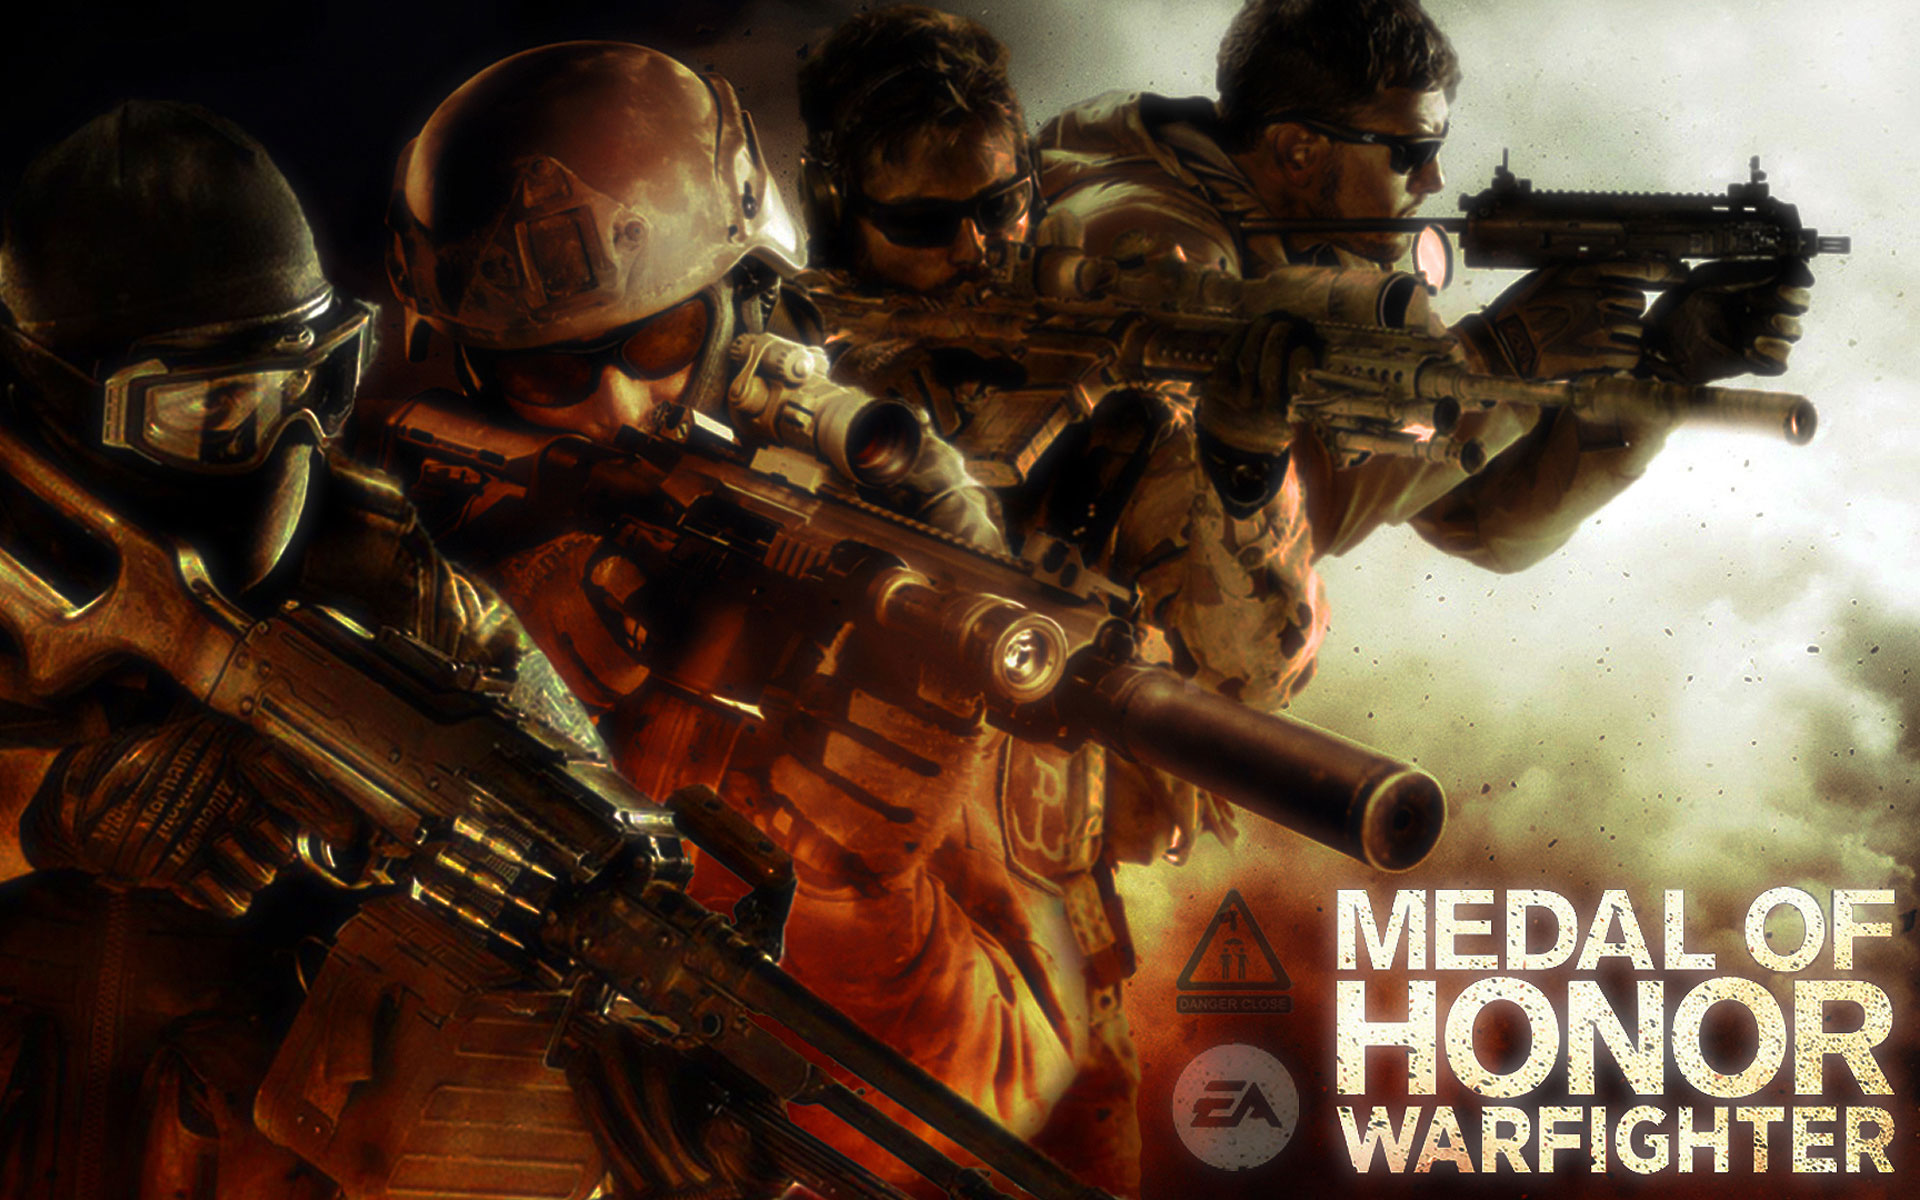 Una mirada a Zero Dark Thirty, el DLC de Medal of Honor: Warfighter [Video]